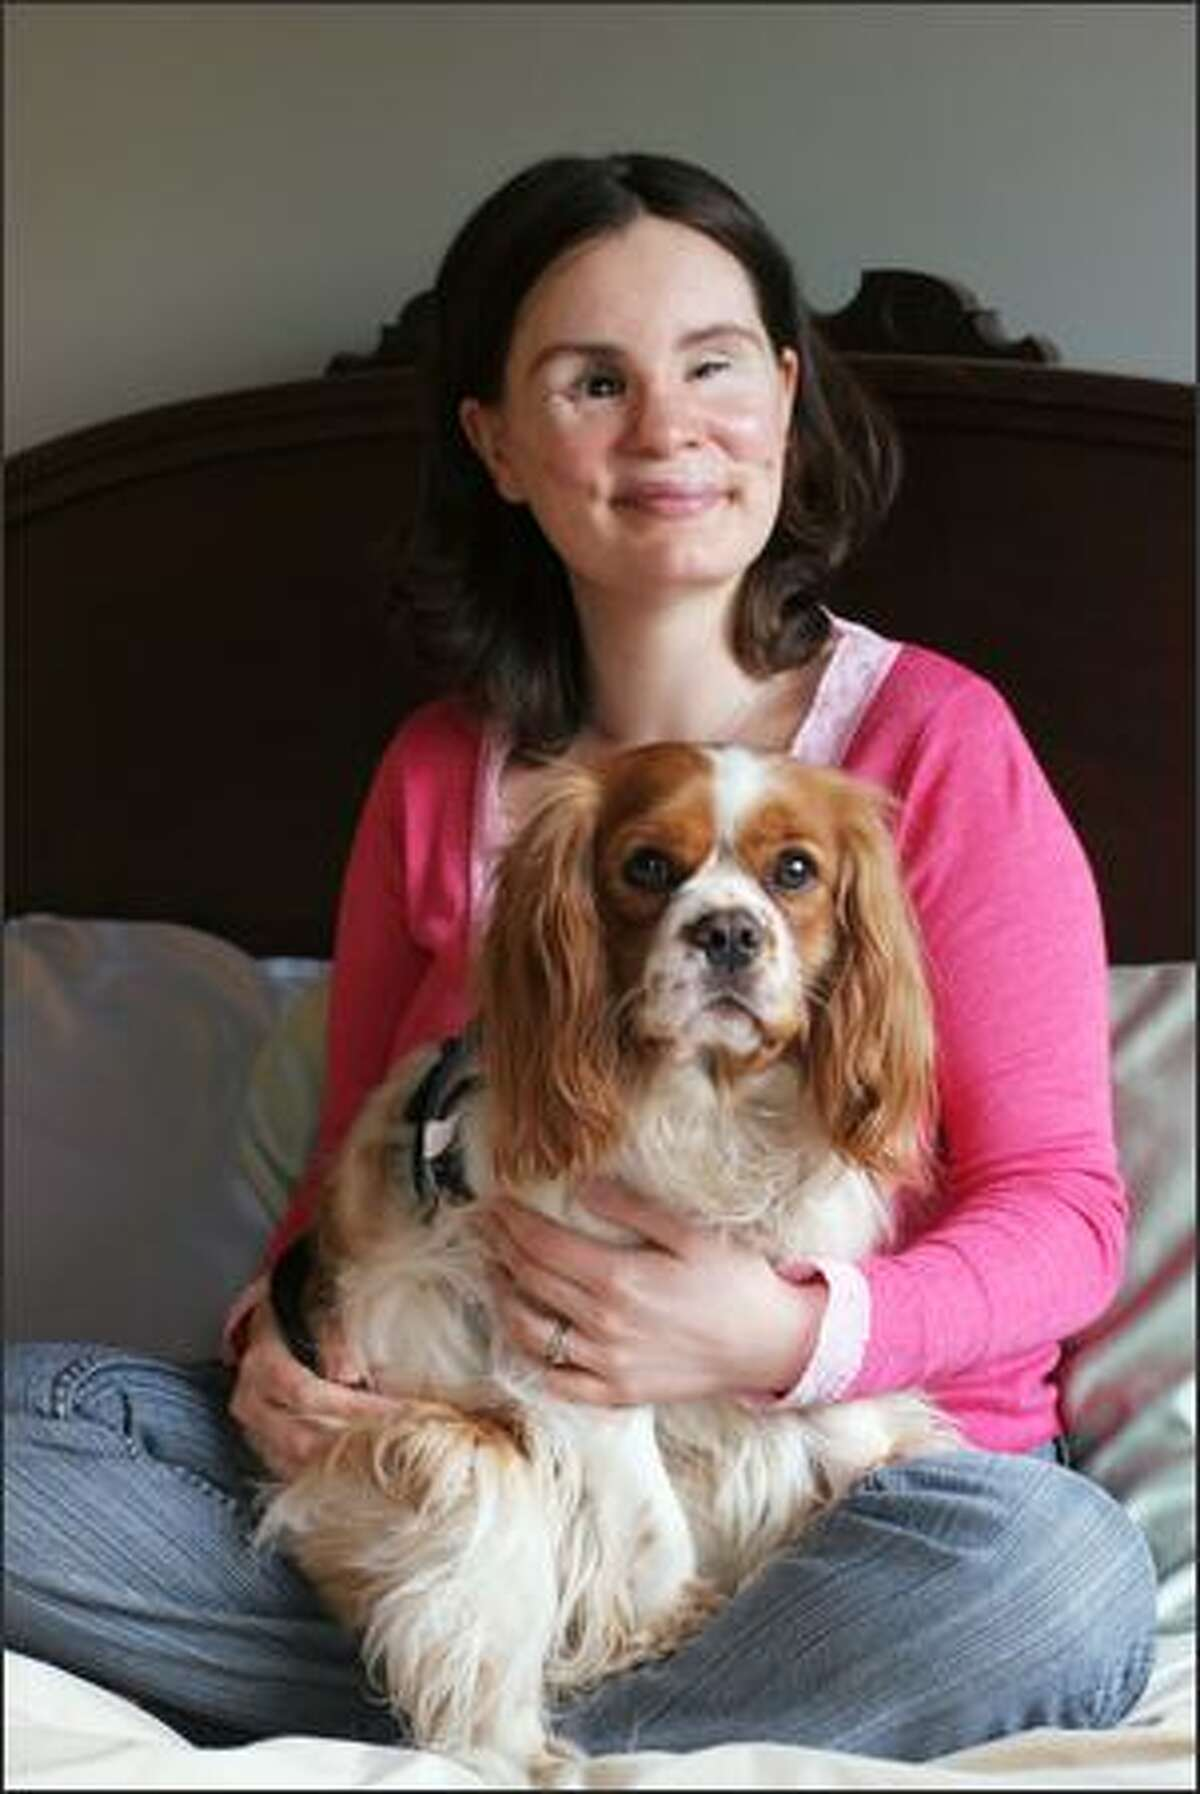 Maria Federici, with Sammy Two Shoes, her Cavalier King Charles Spaniel, was blinded and nearly killed in 2004 when a piece of wood flew off a truck and smashed into the windshield of her car. She is planning to marry a man she met through a counselor. She considers herself